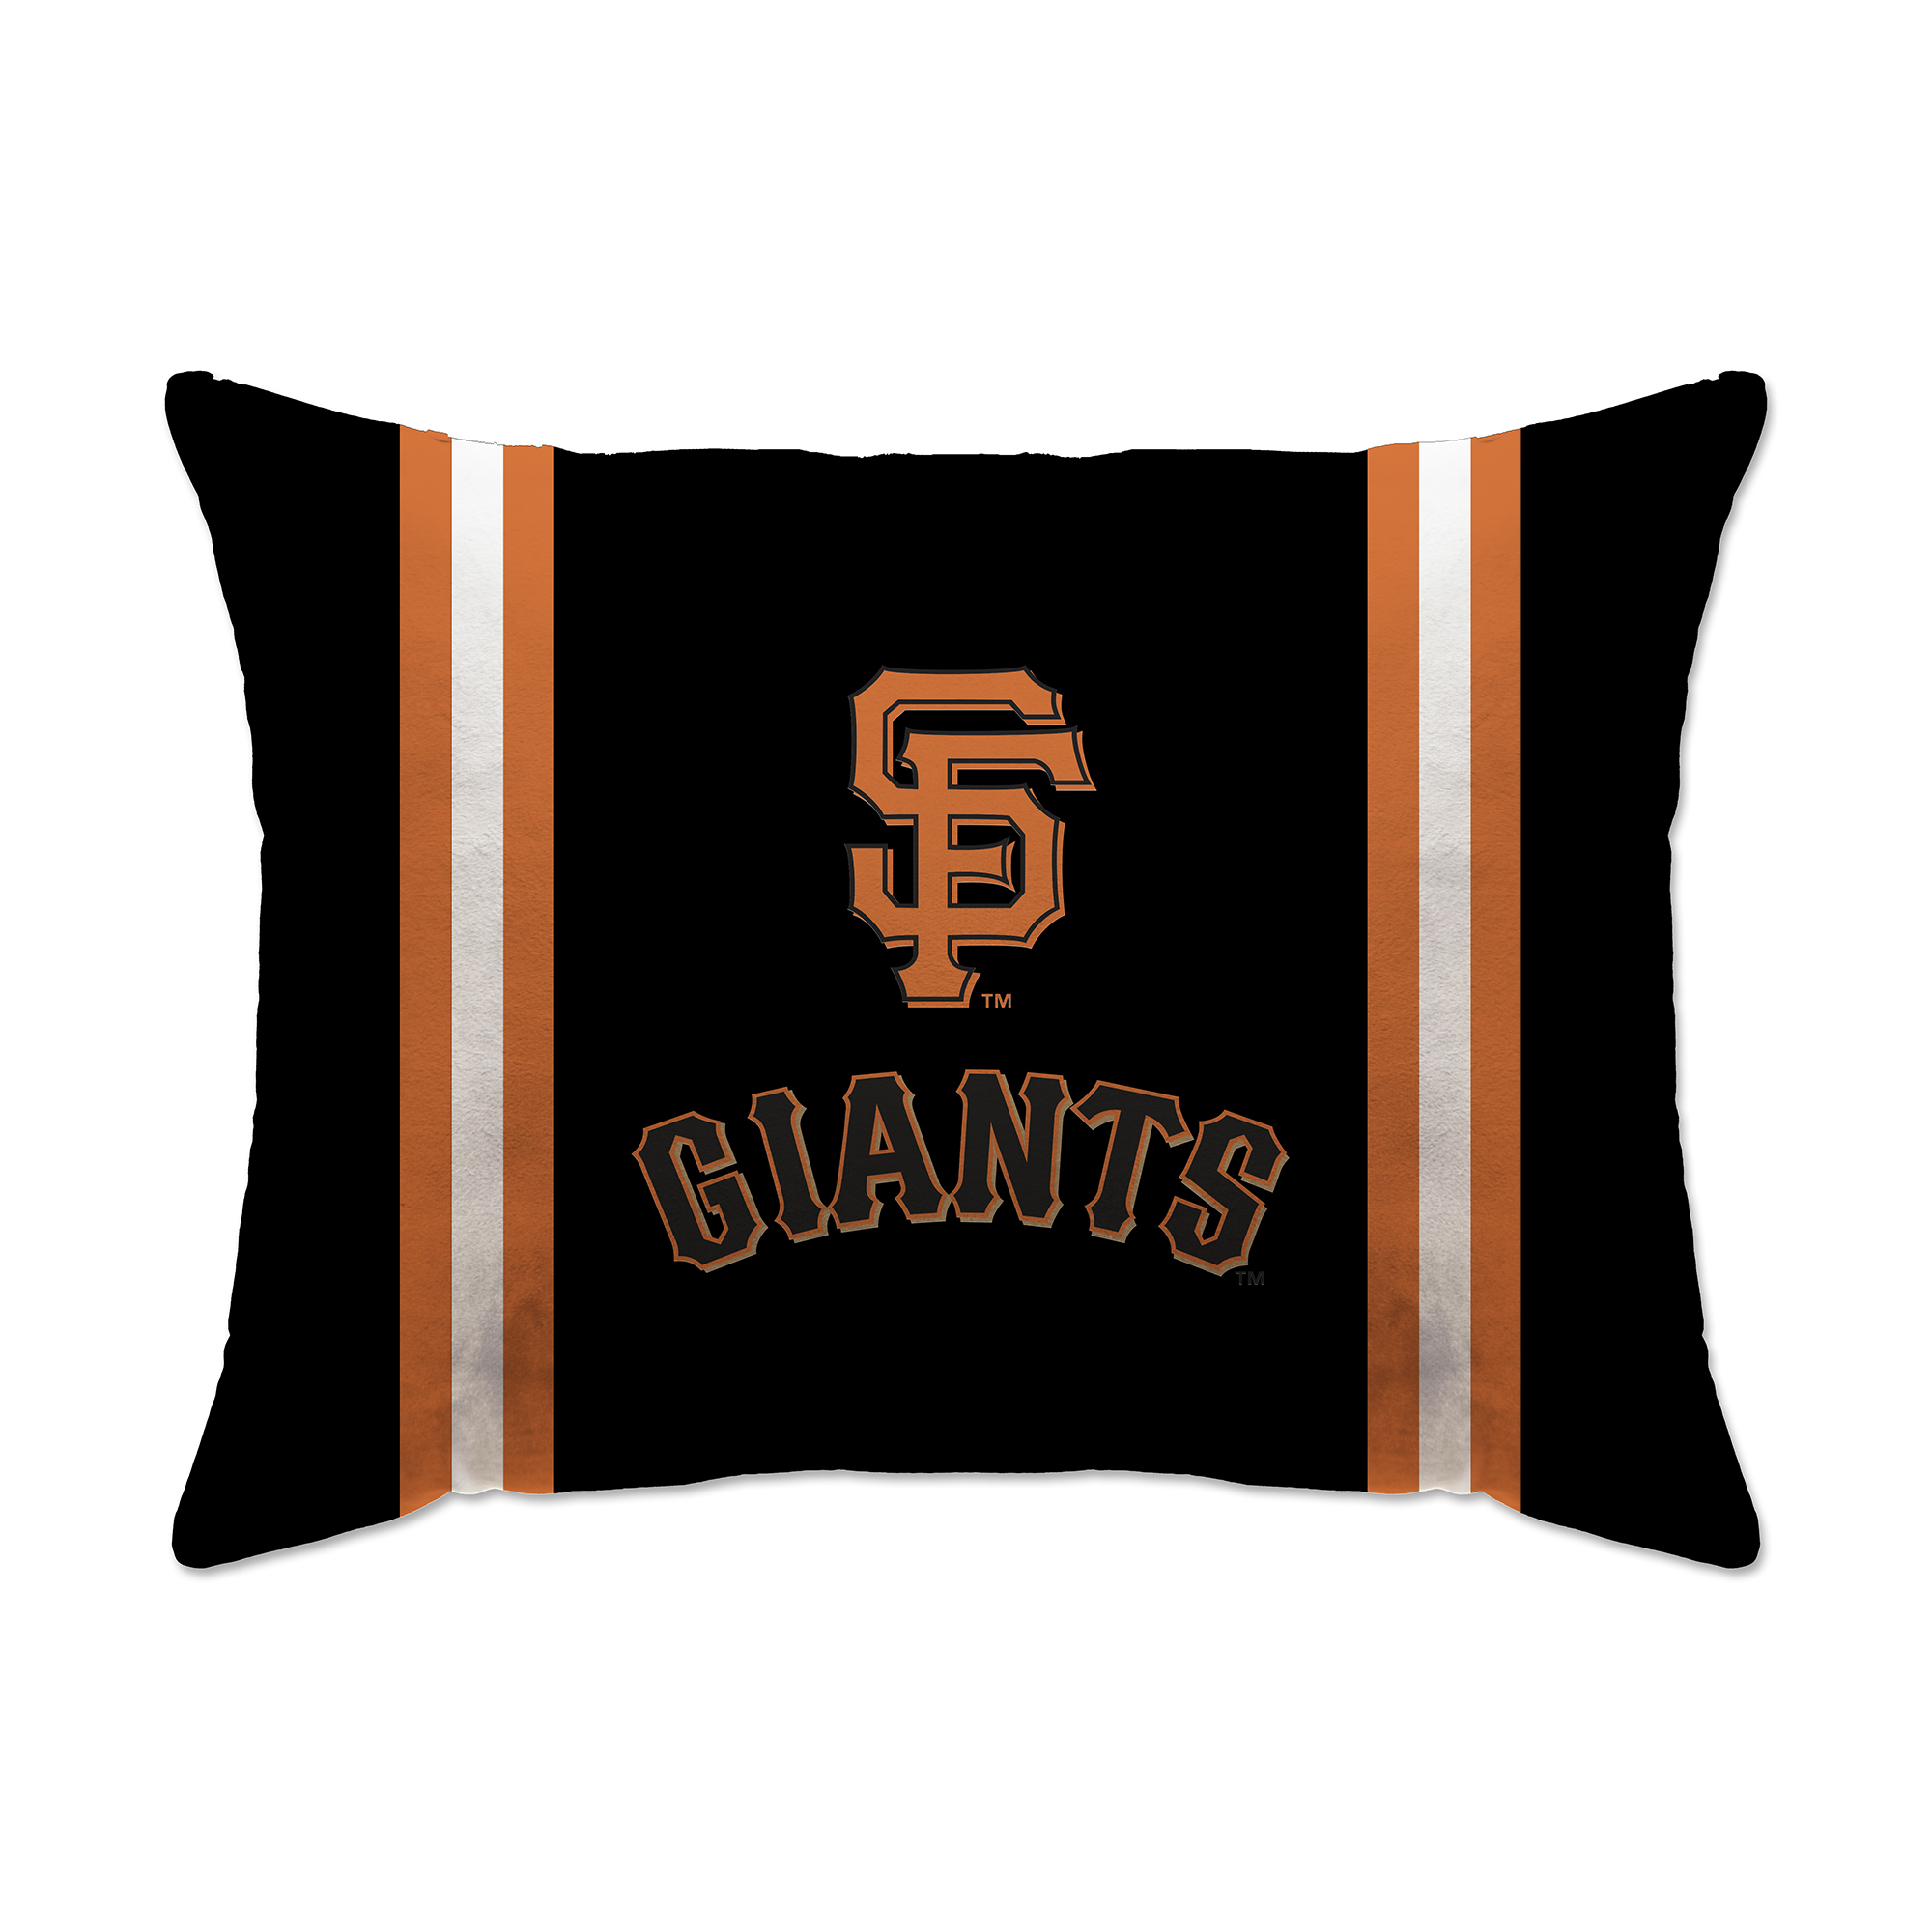 "San Francisco Giants 20"" x 26"" Plush Bed Pillow - Black - No Size"